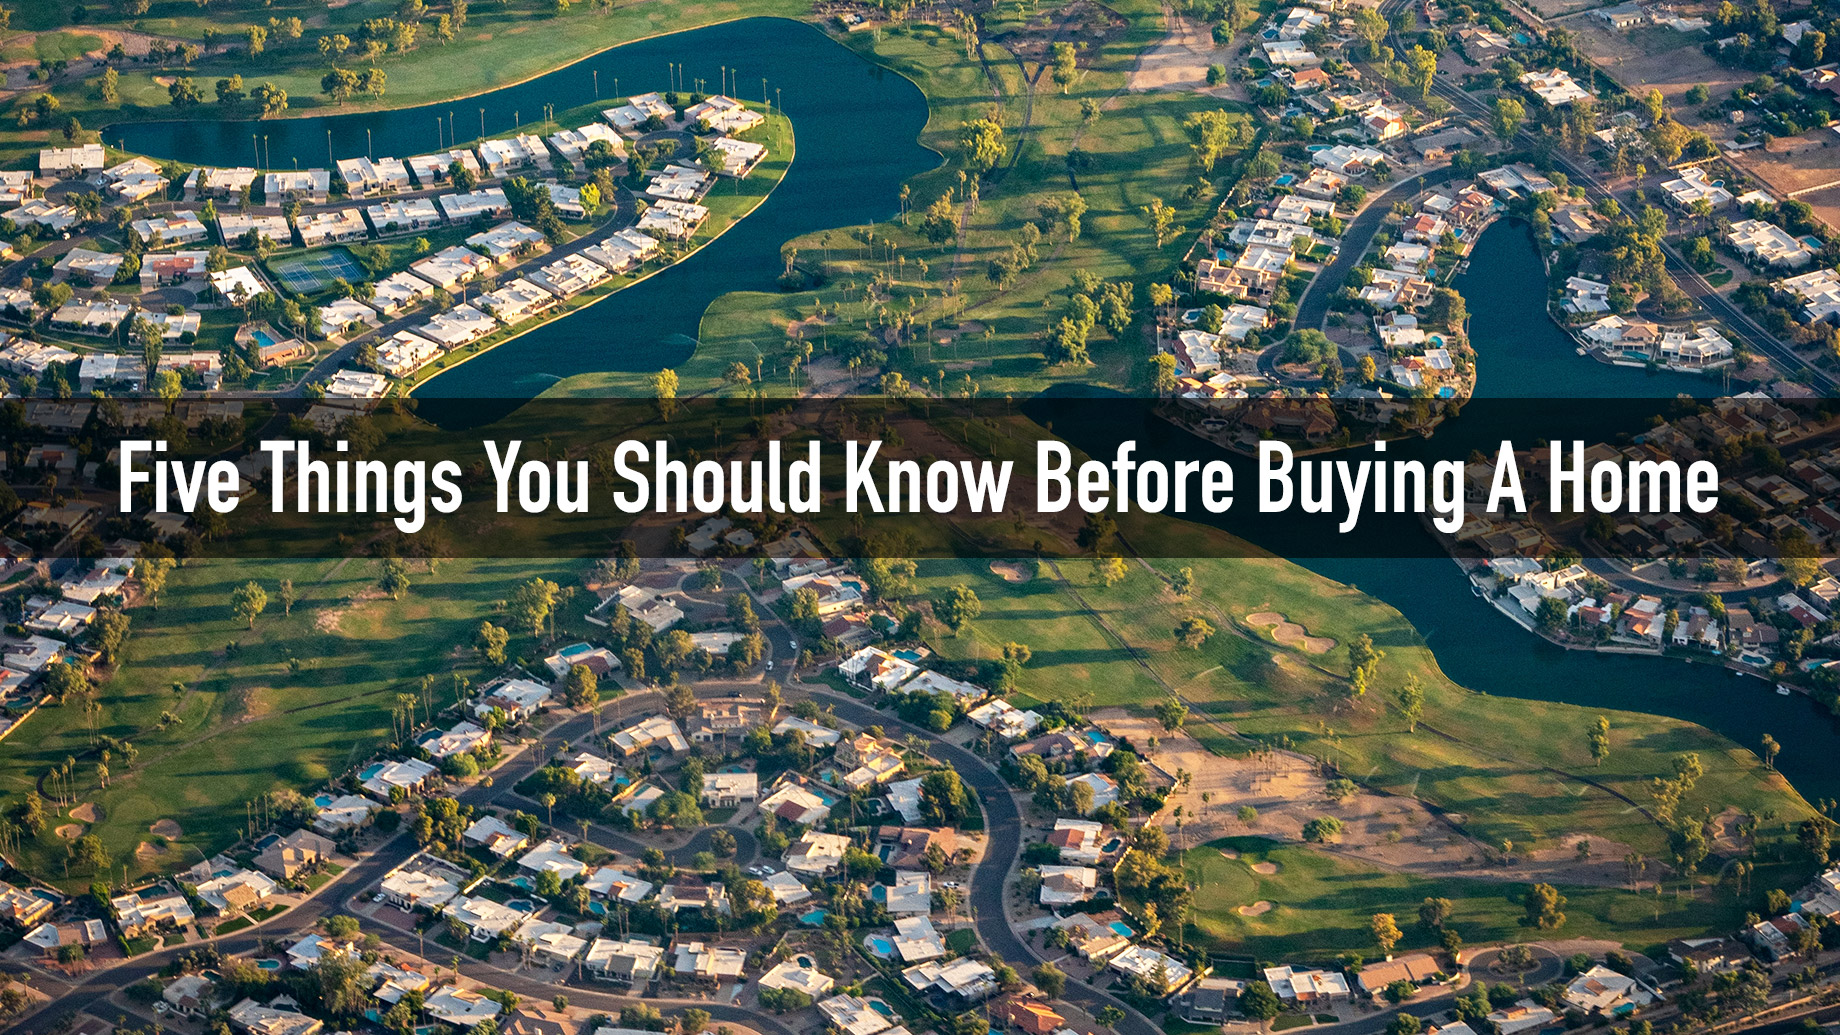 Five Things You Should Know Before Buying A Home